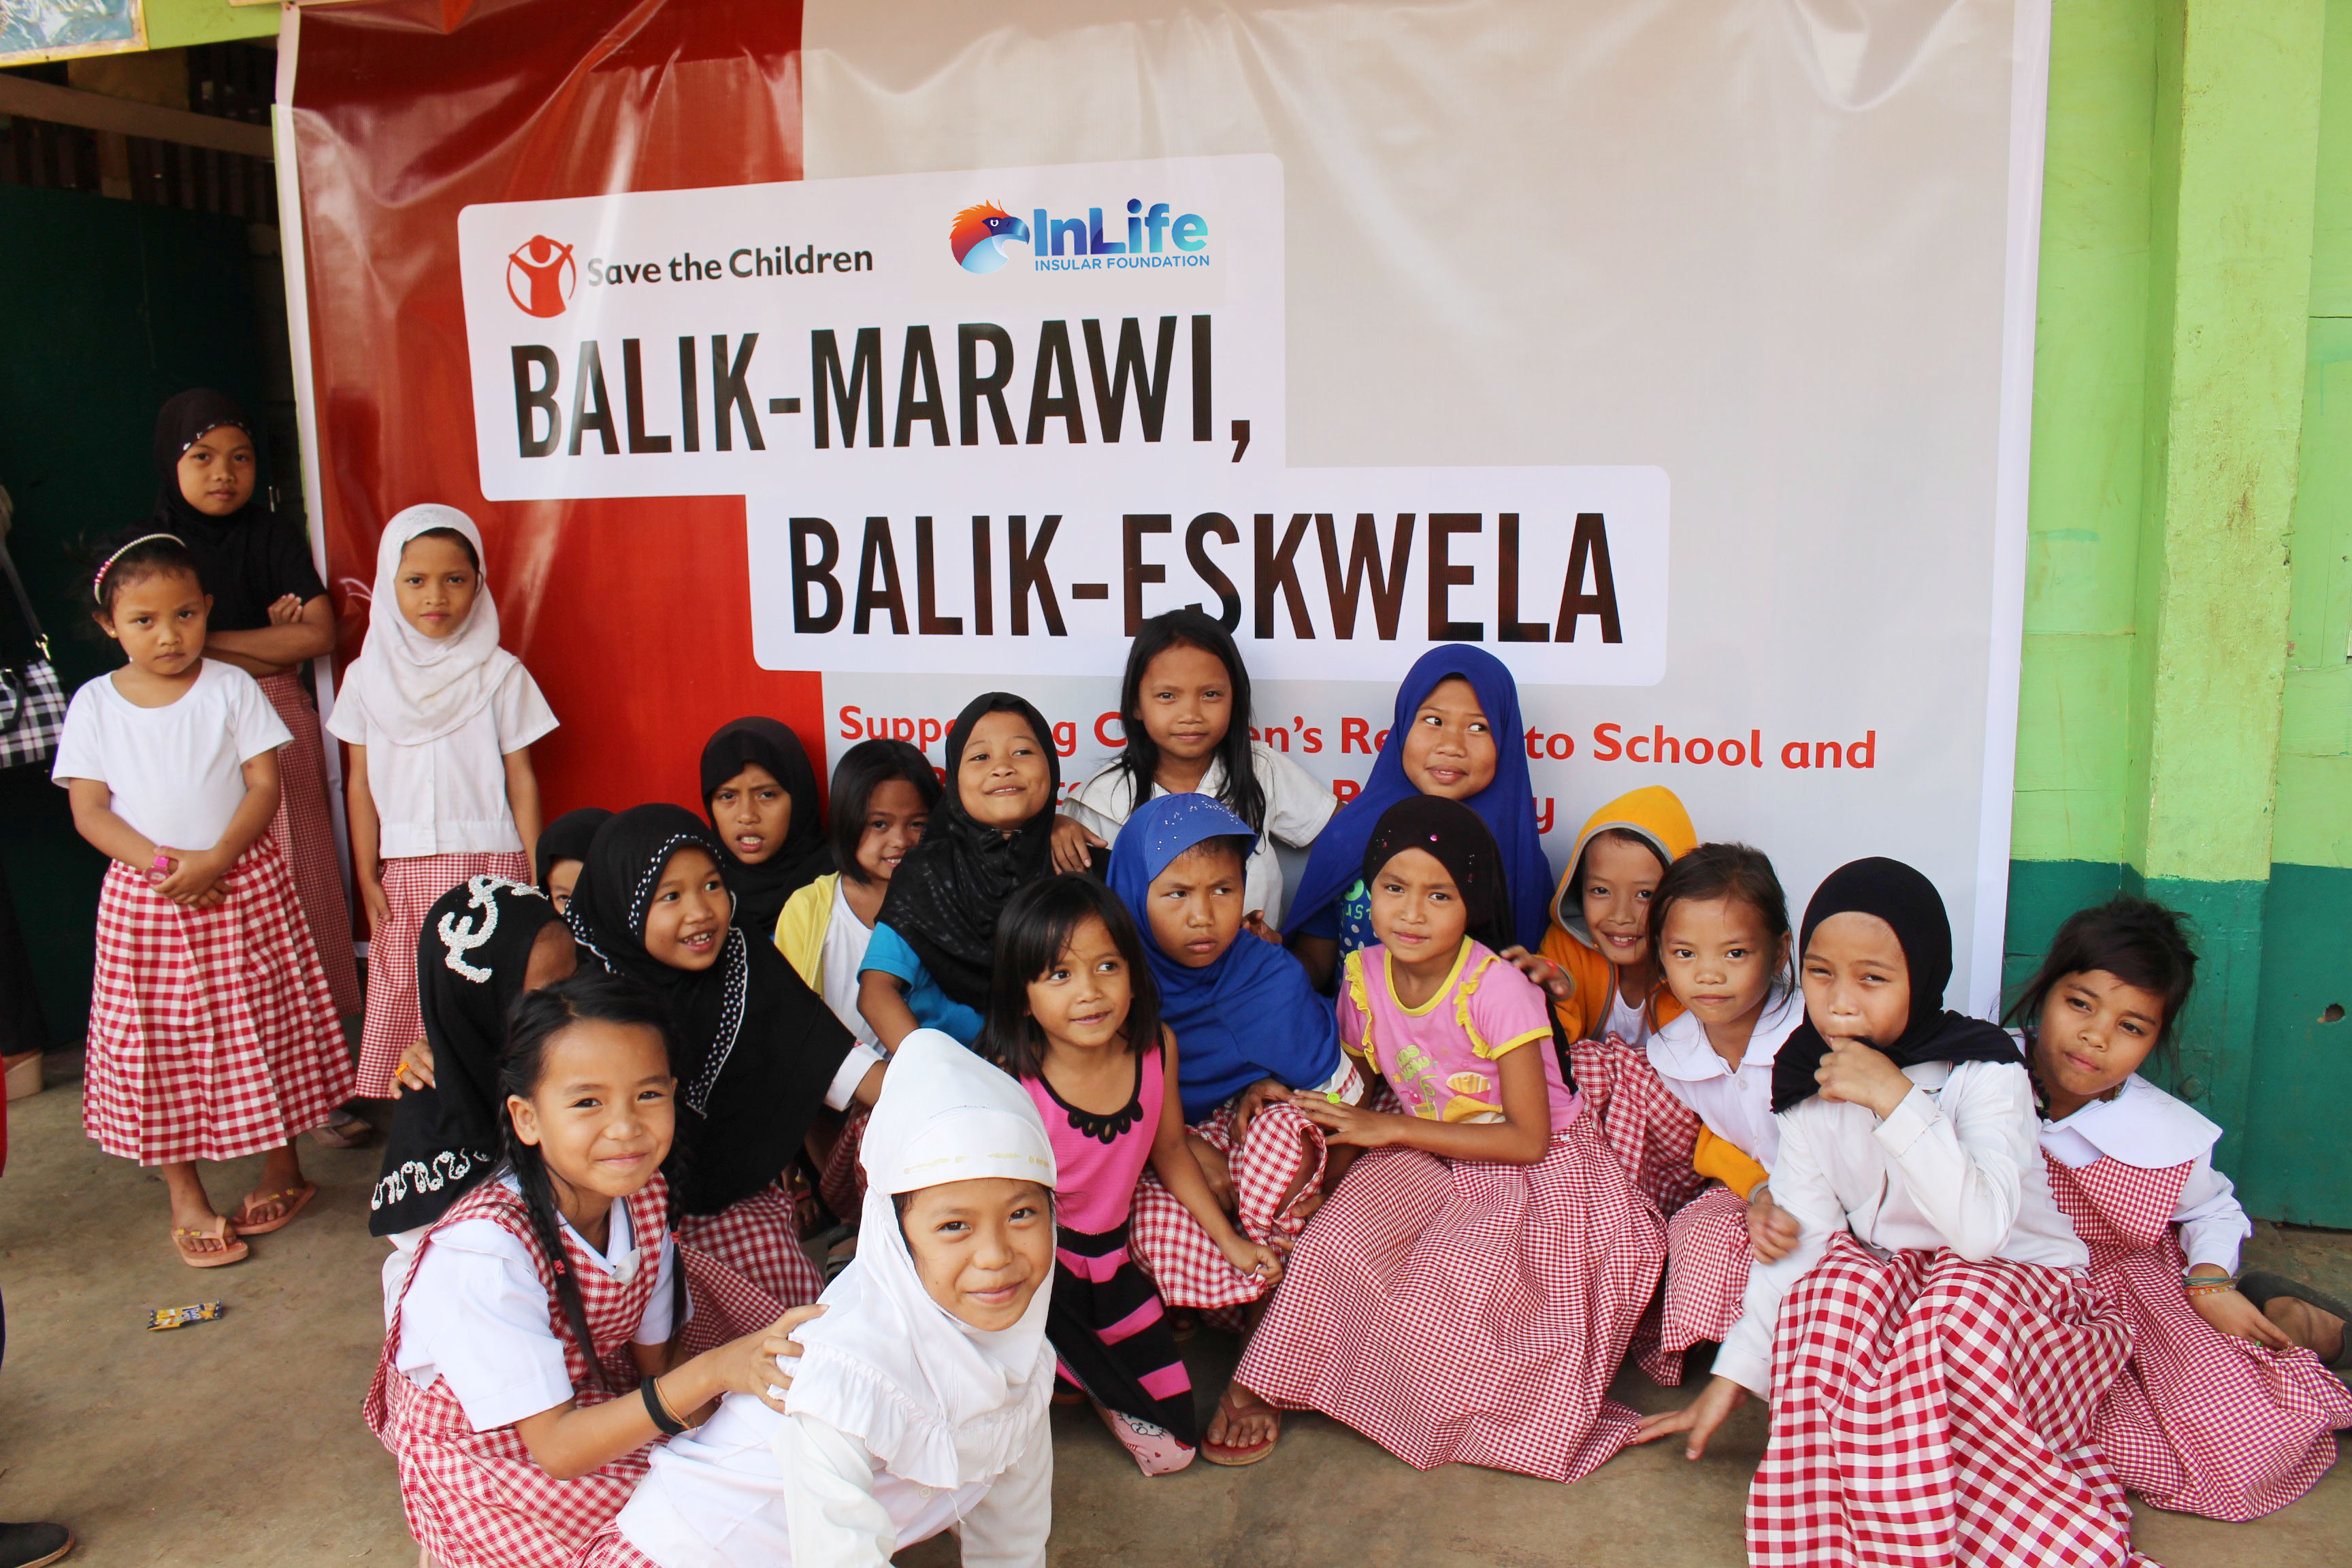 Insular Foundation, Save the Children Phils. help displaced Marawi youth to resume schooling